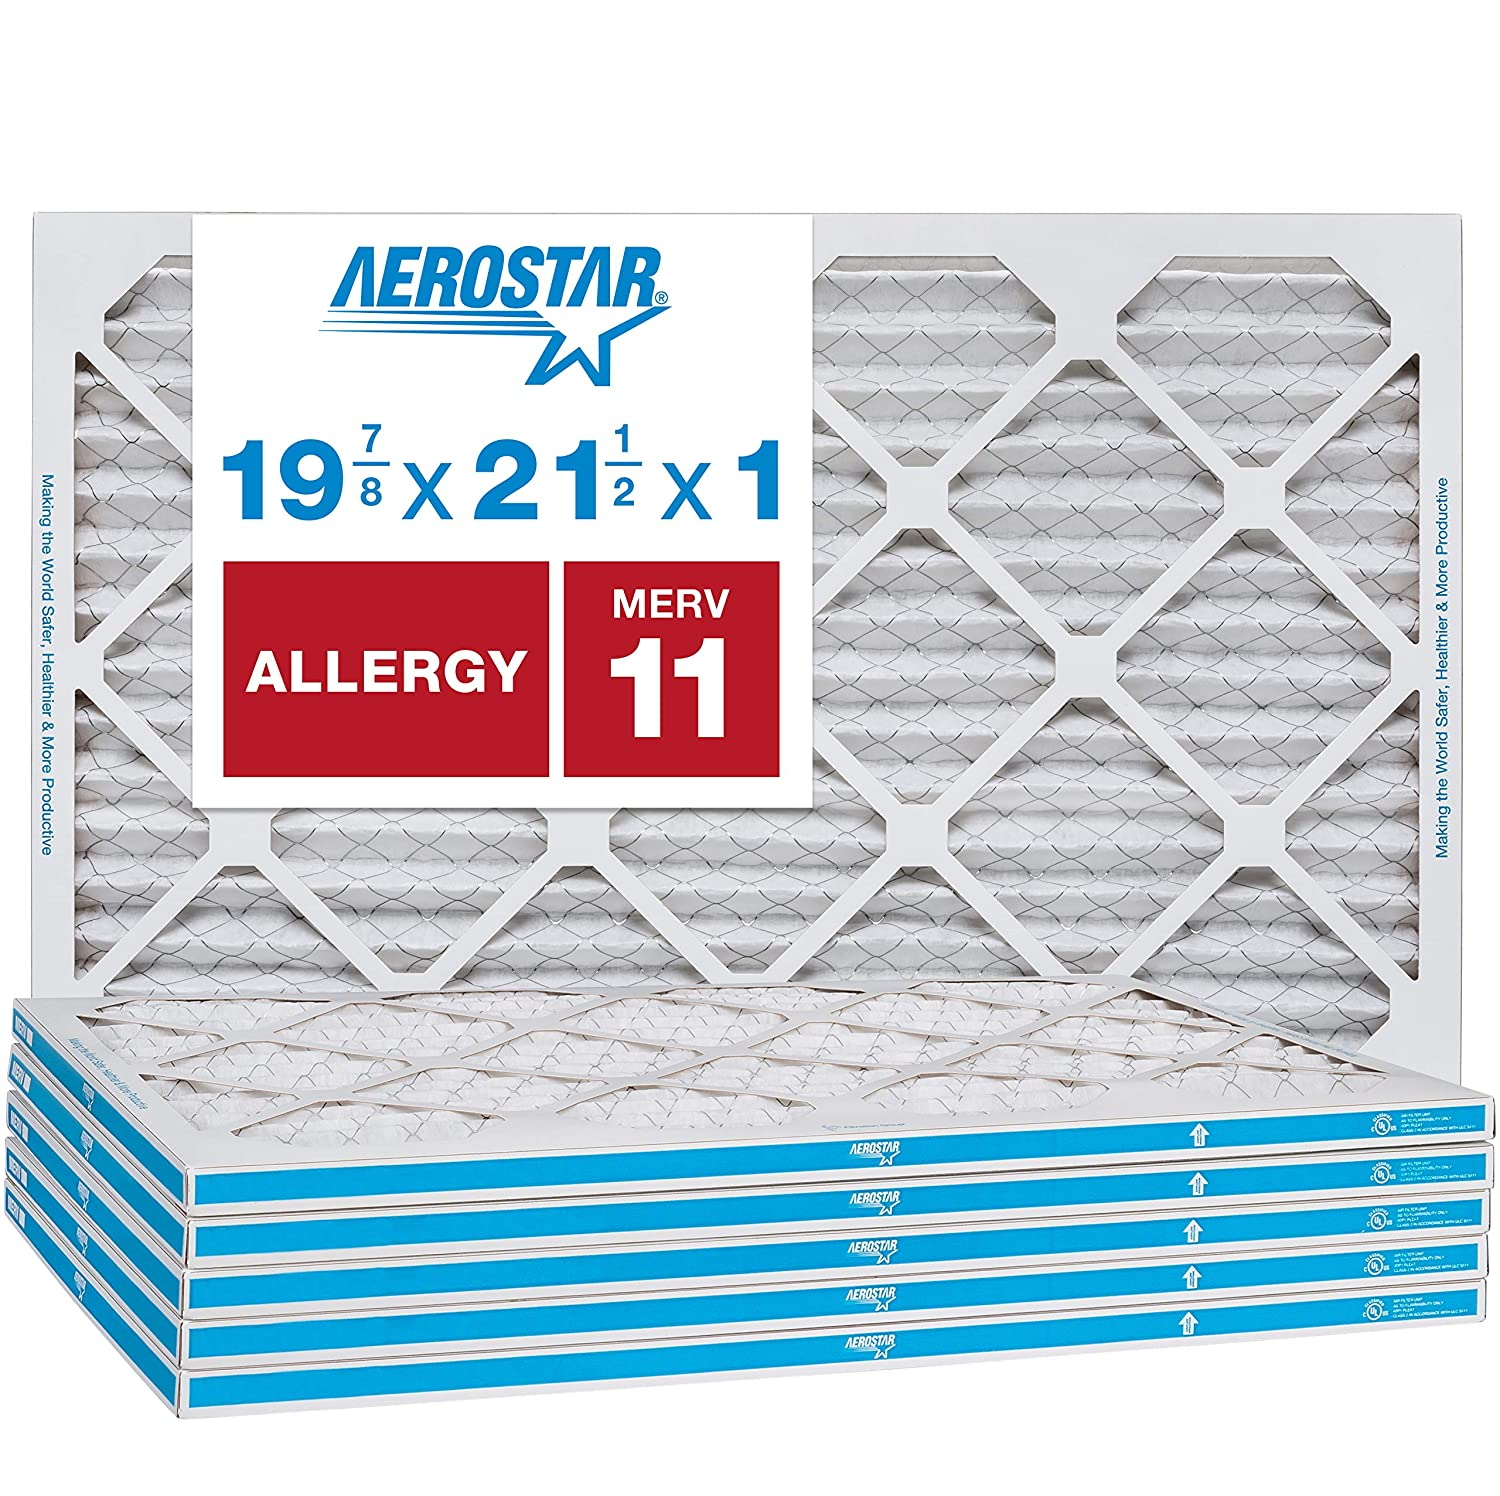 Aerostar Allergen & Pet Dander 19 7/8 x 21 1/2x1 MERV 11 Pleated Air Filter, Made in the USA, 6-Pack